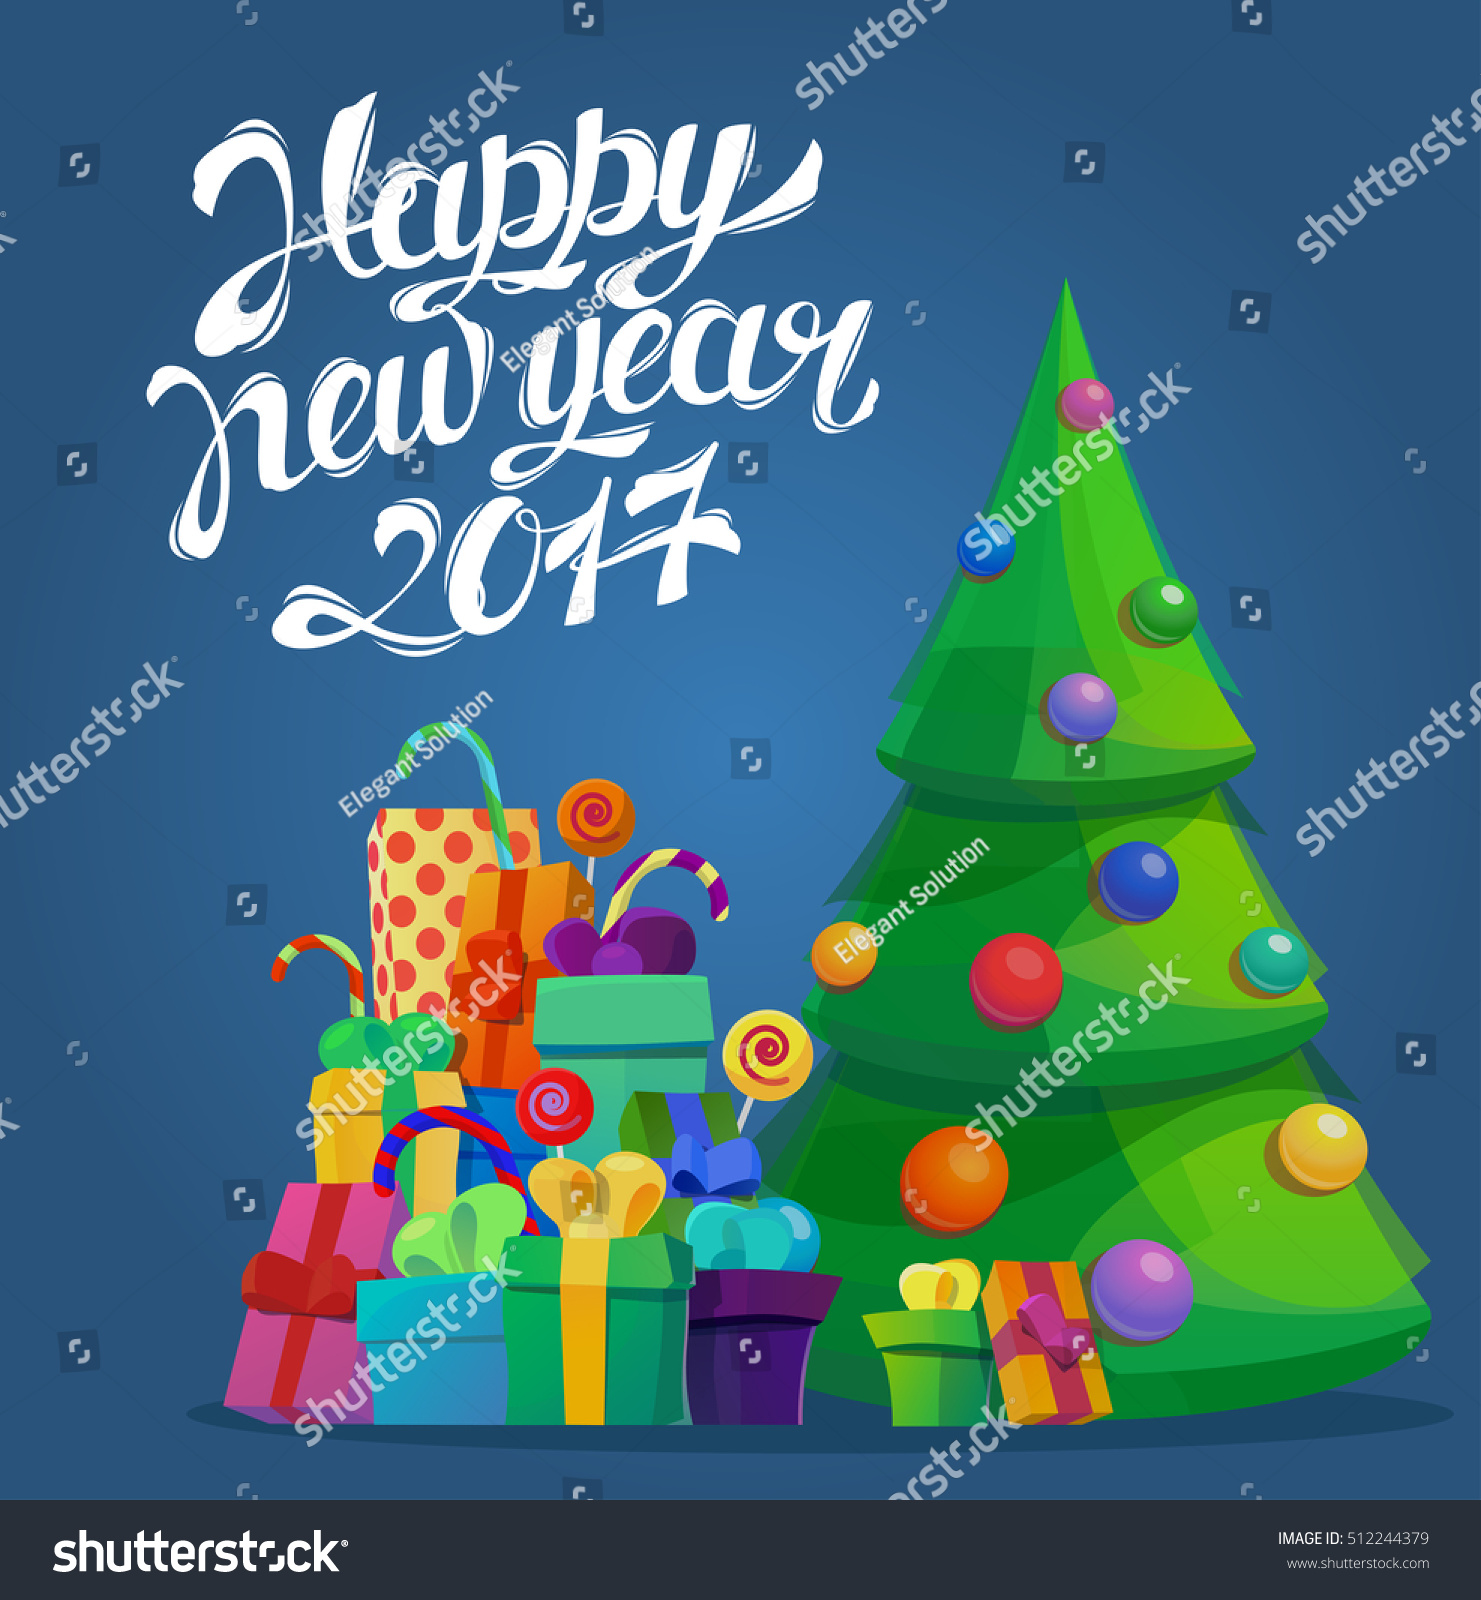 Fir tree new 2017 year merry stock vector royalty free 512244379 fir tree for new 2017 year and merry christmas greeting card template with gift or m4hsunfo